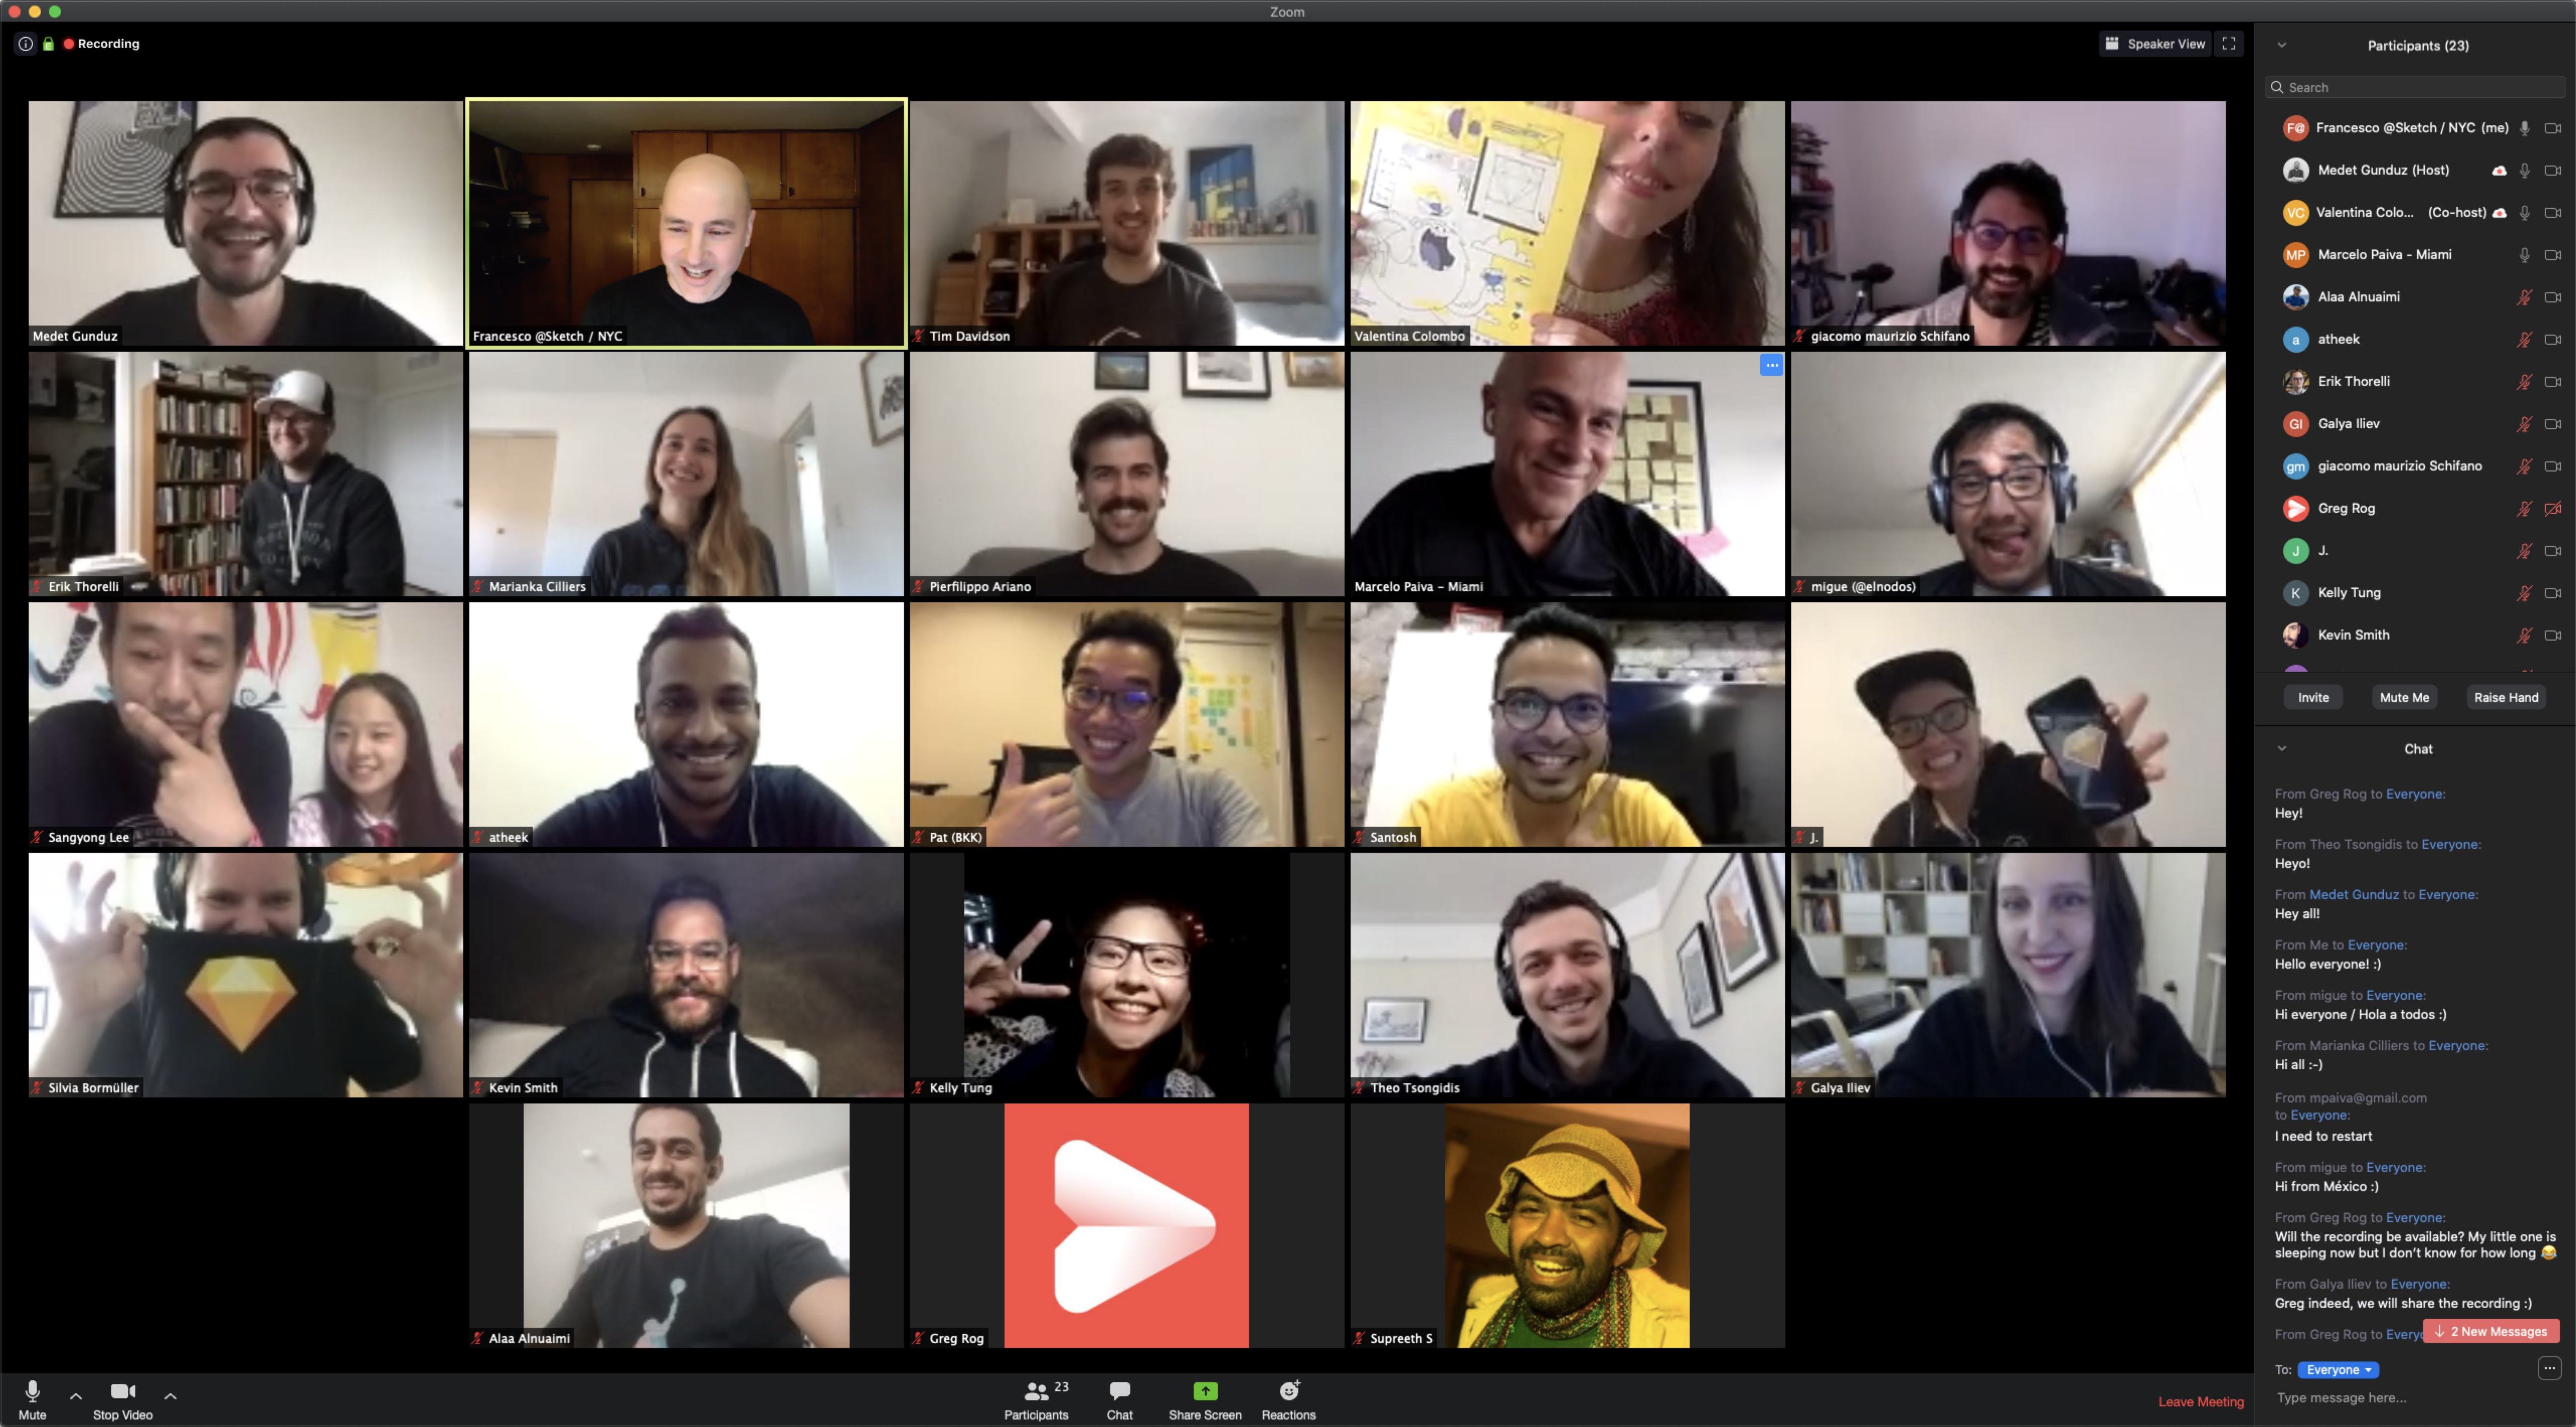 Another screenshot taken from a Zoom call showing lots of users taking part in a meetup.